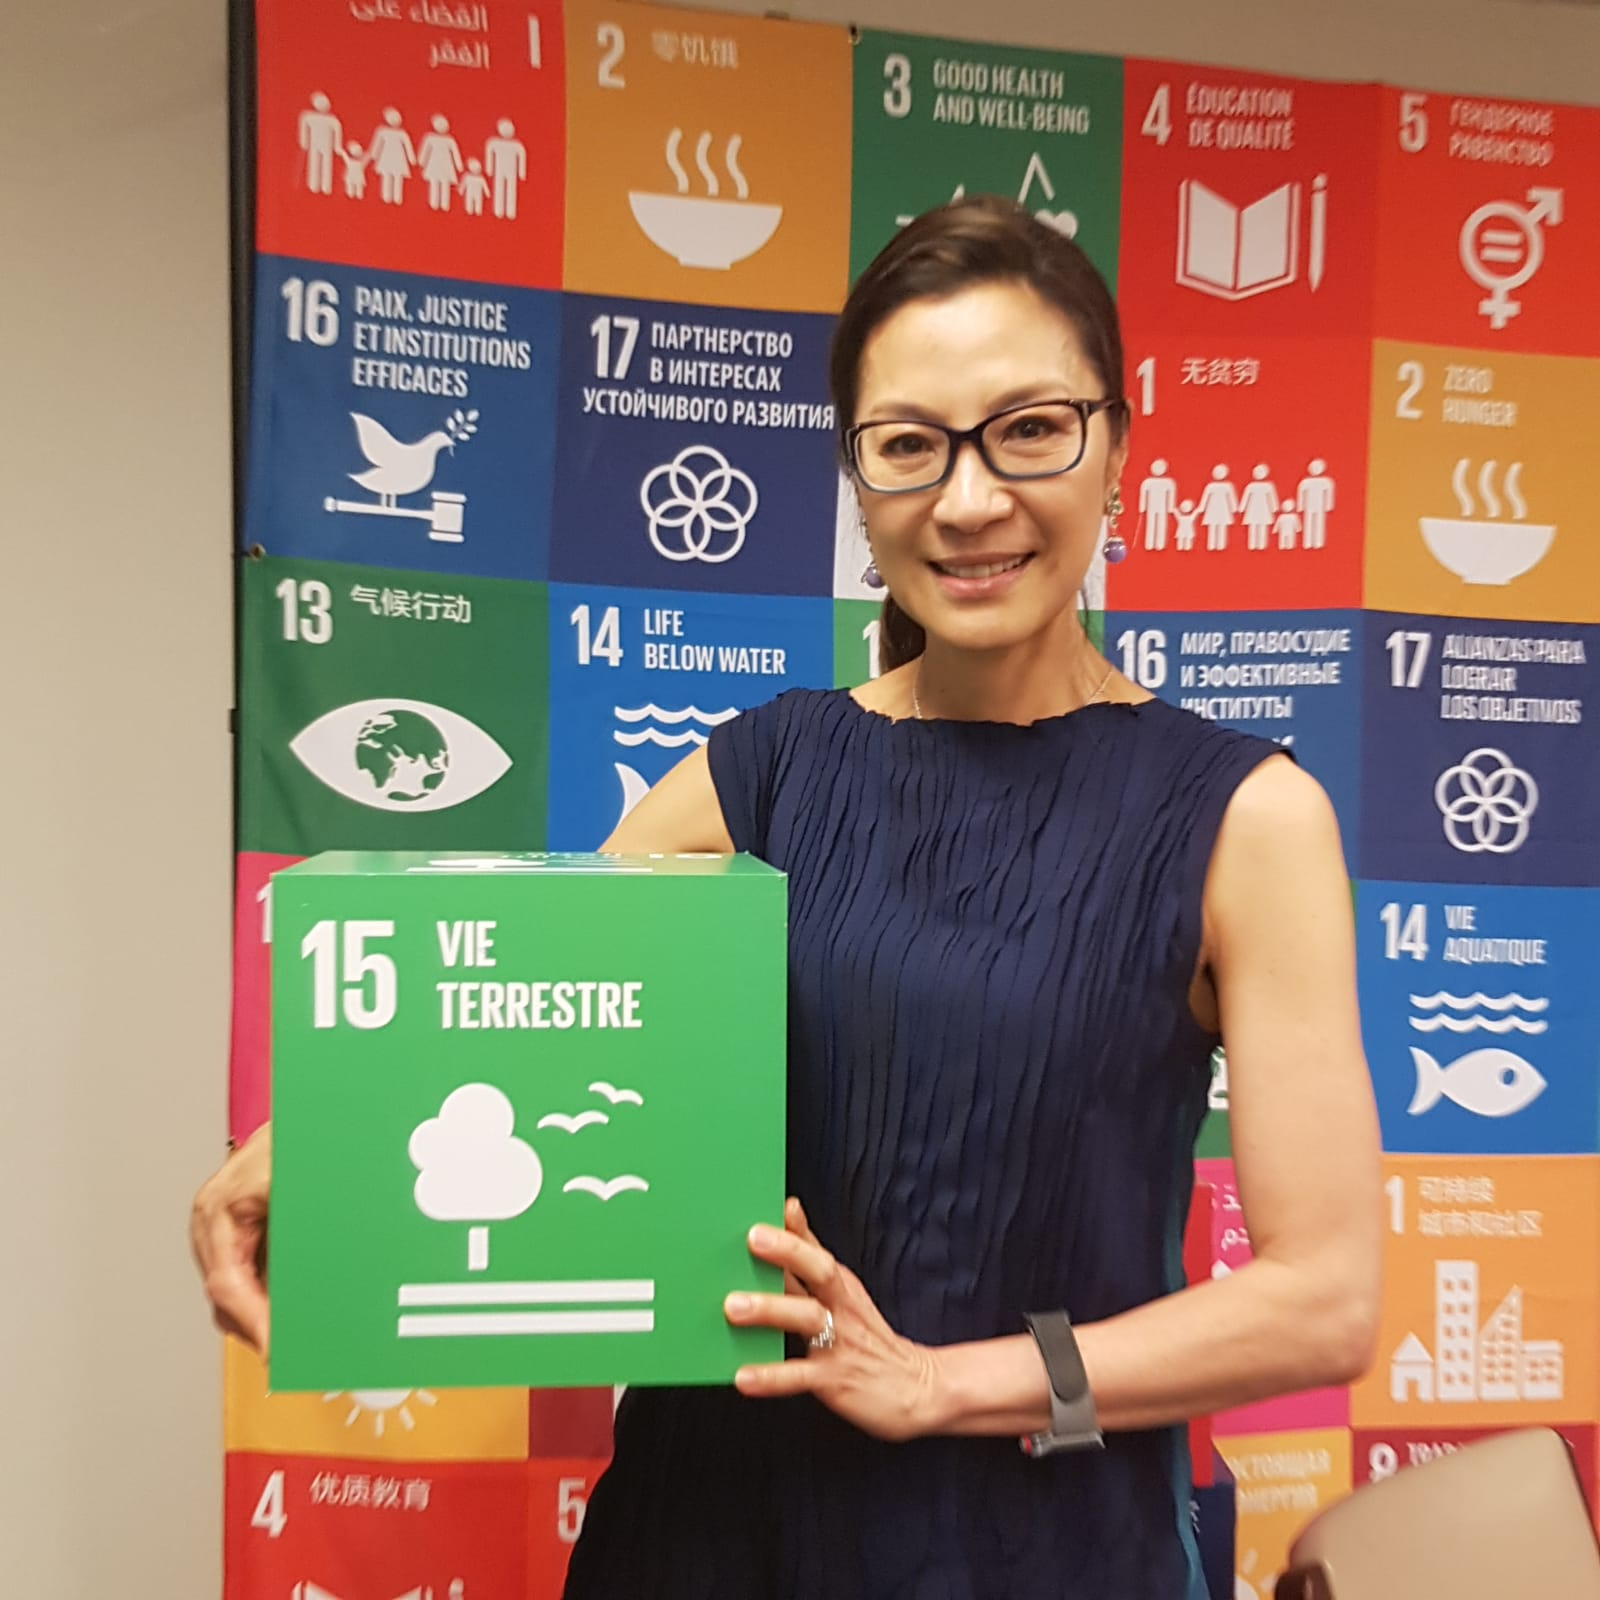 UNDP Goodwill Ambassador Michelle Yeoh at the High-Level Political Forum in New York 2018. ©UNECE/FAO